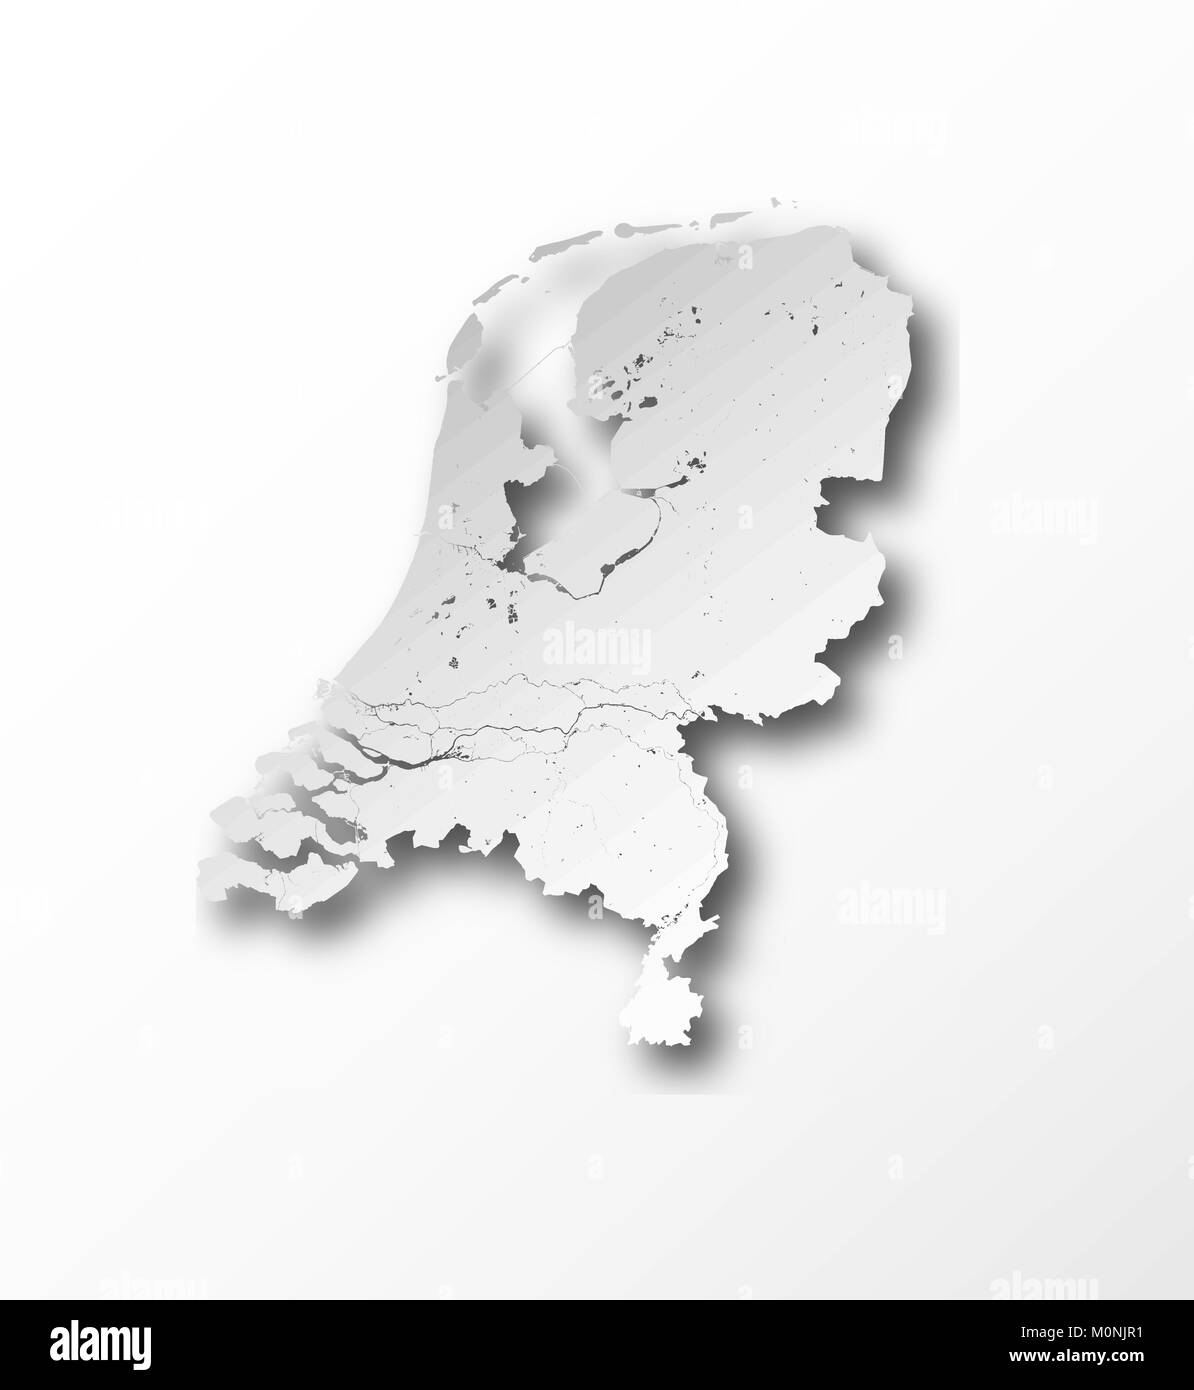 Map of Netherlands with paper cut effect. Rivers and lakes are shown. - Stock Vector